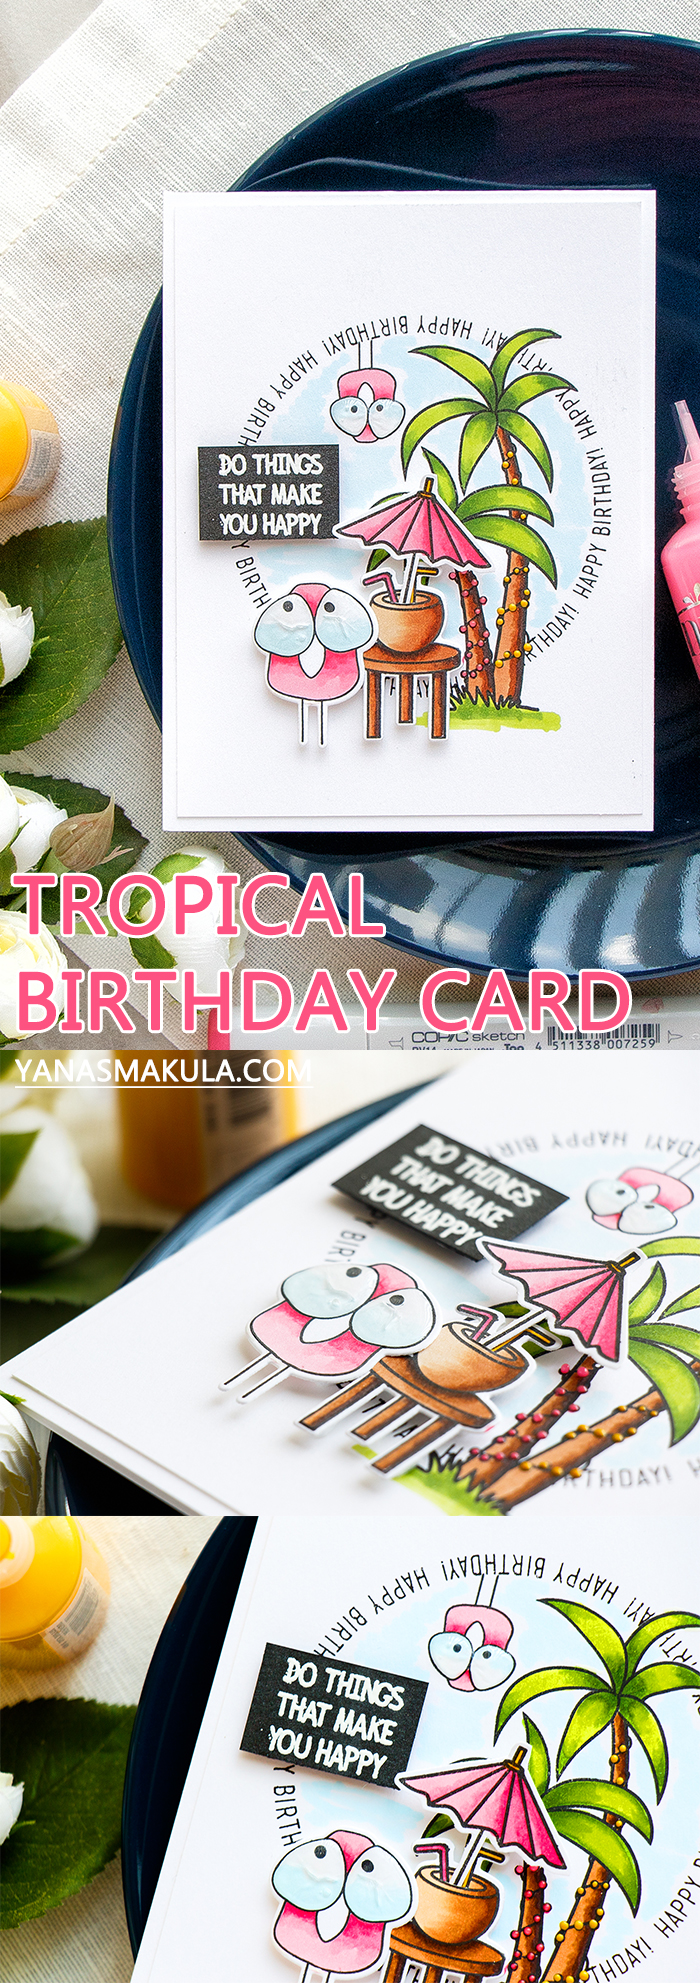 Simon Says Stamp | Tropical Birthday Card - Do Things That Make You Happy. Handmade card by Yana Smakula